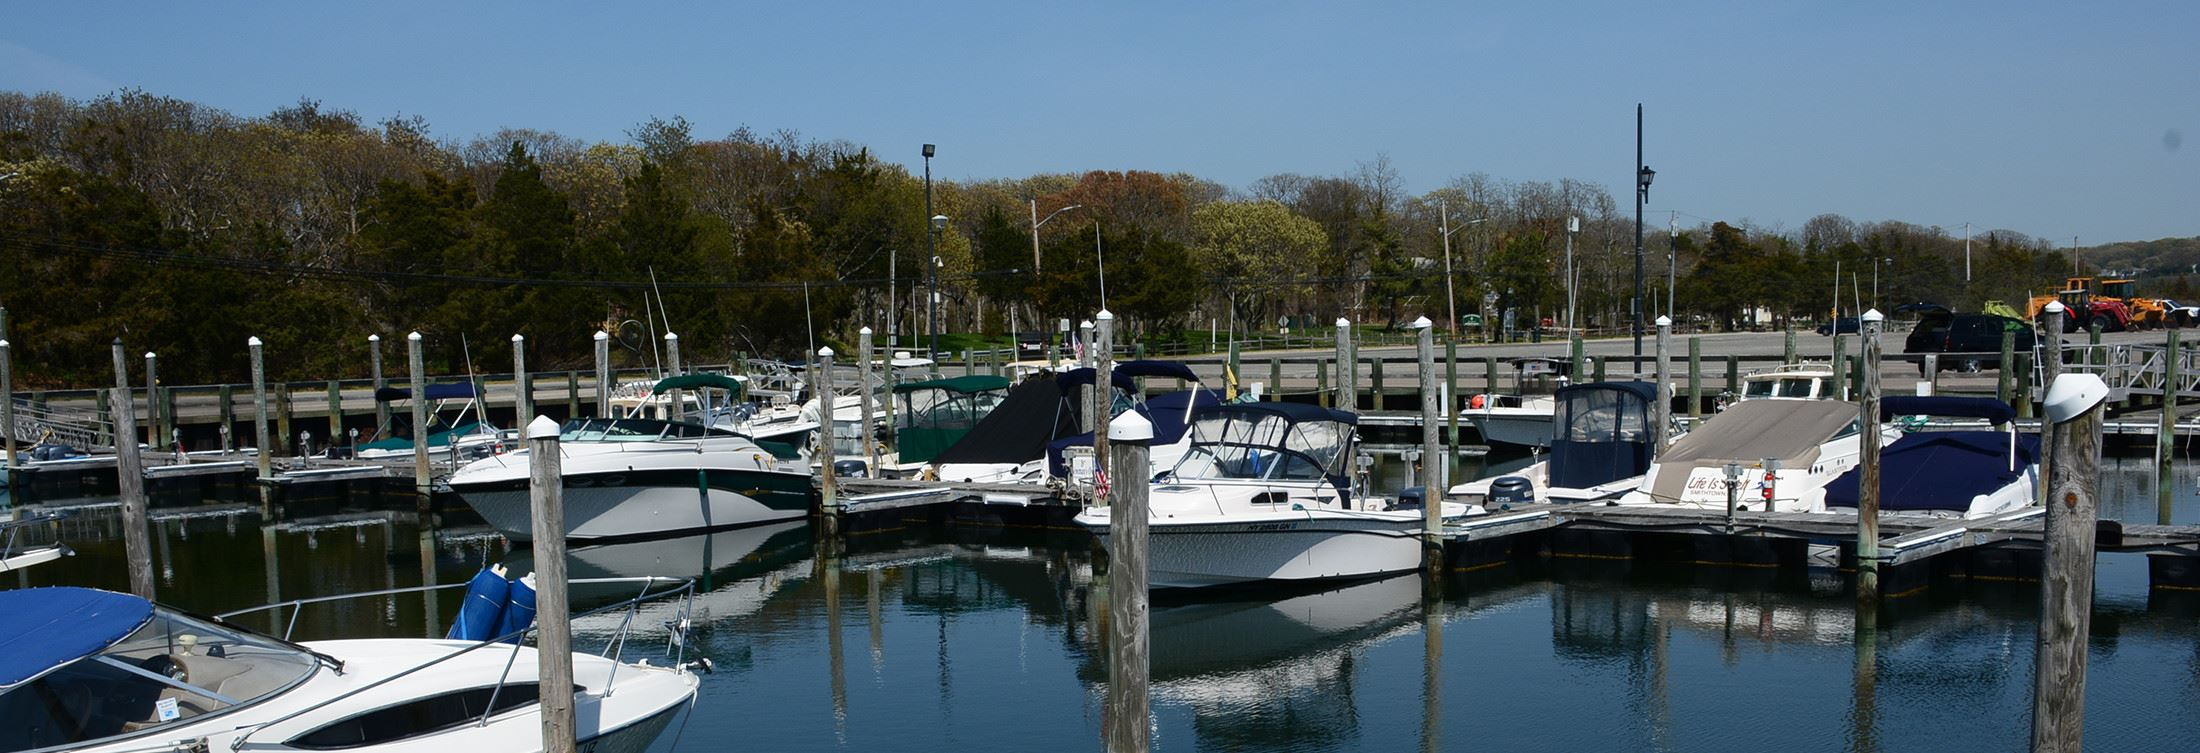 Smithtown, NY - Official Website   Official Website